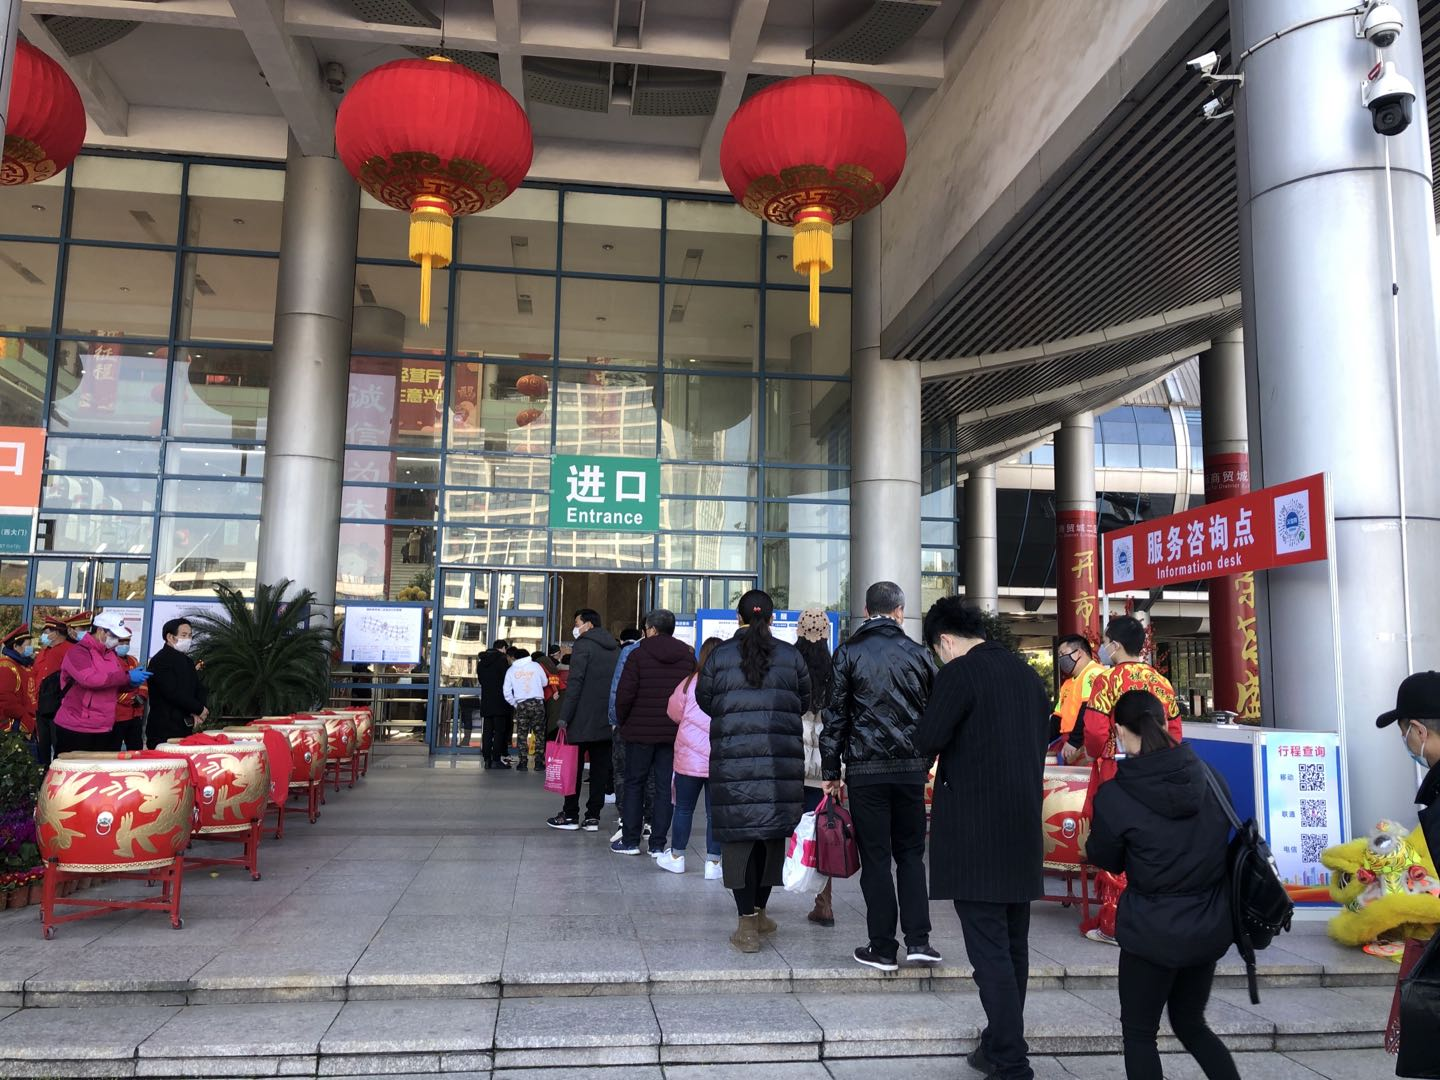 District 1 and 2 of Yiwu Futian market opened on Feb. 18, 2020.